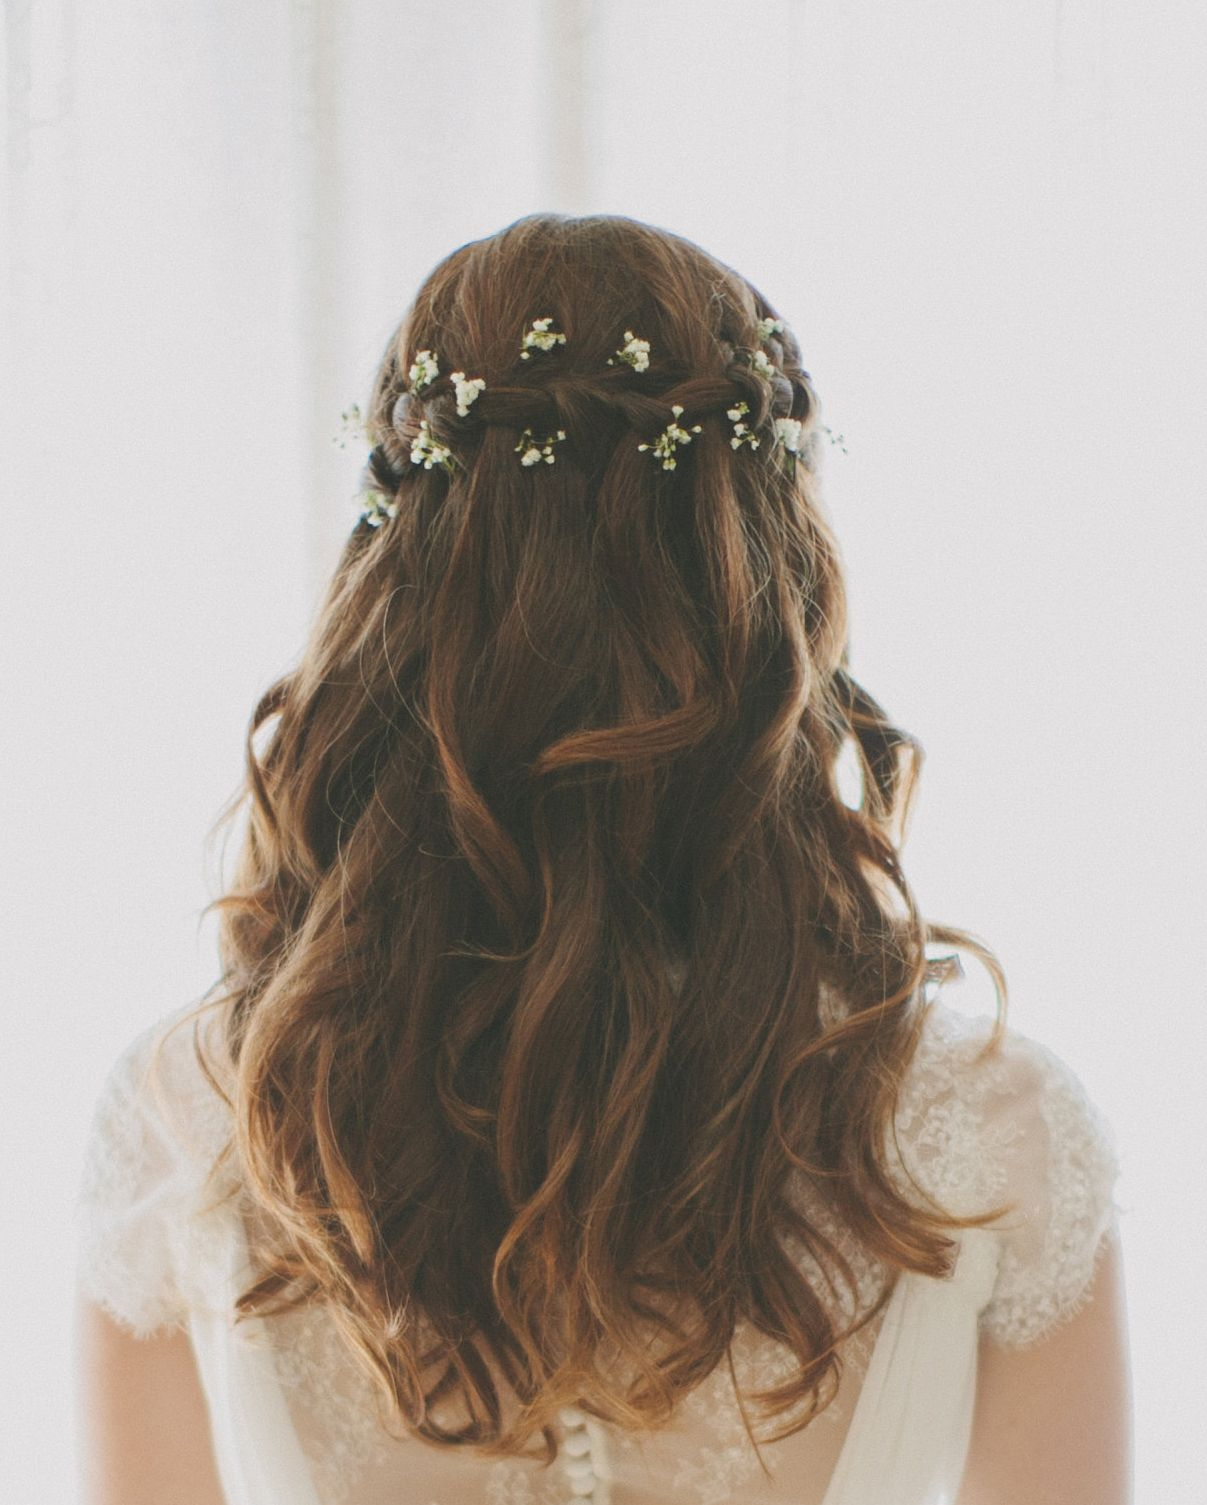 waterfall braid wedding hair with baby's breath | baby